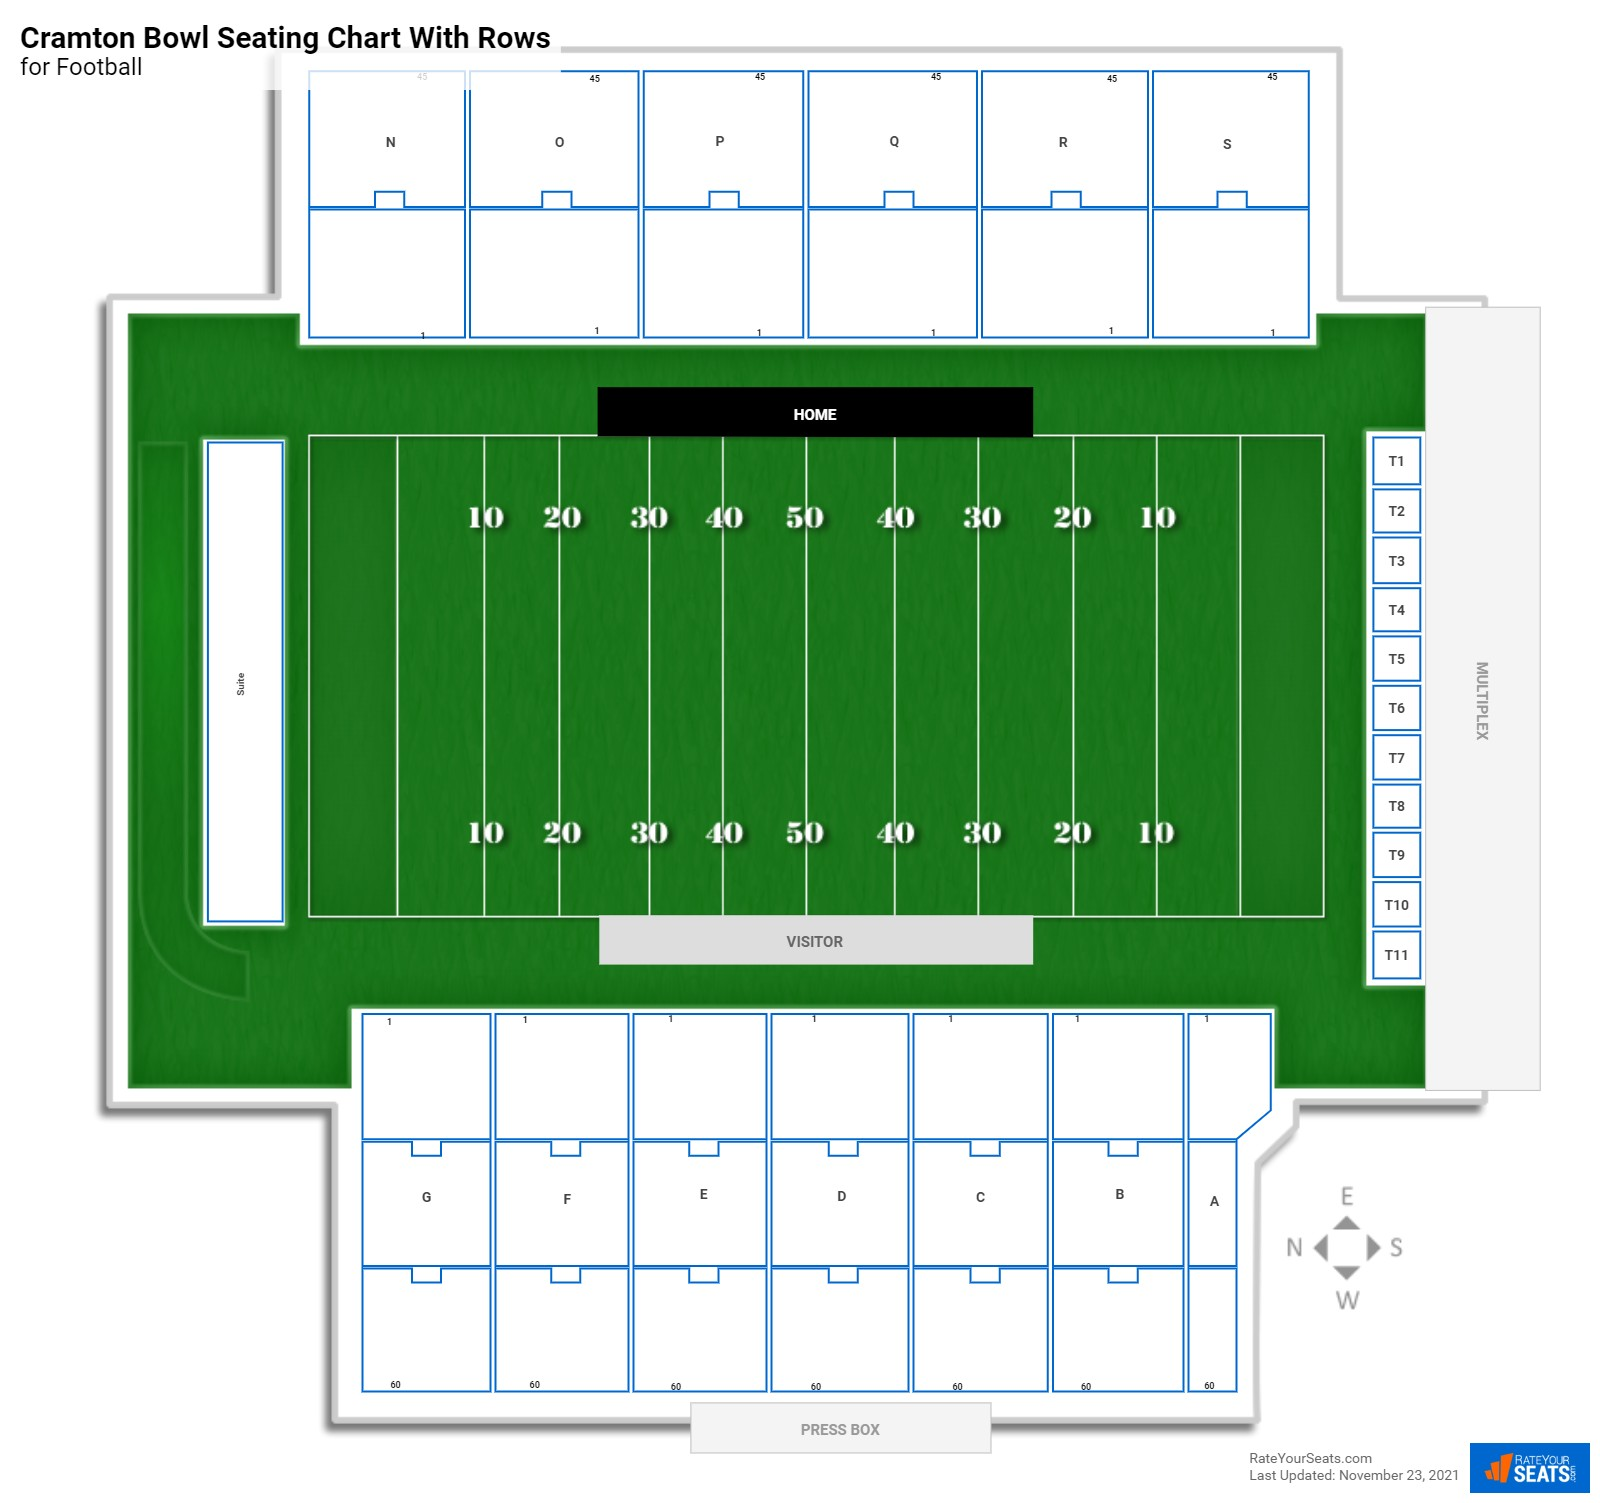 Cramton Bowl seating chart with rows